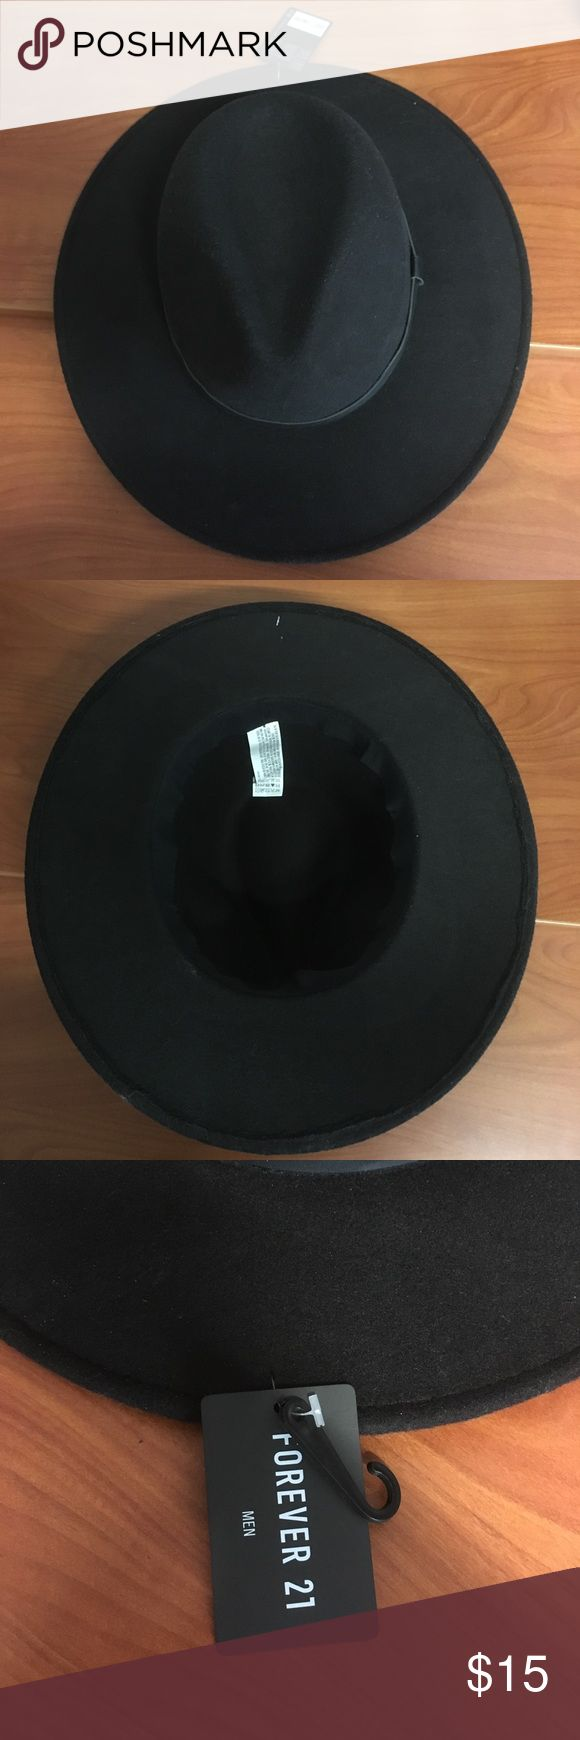 Forever 21 Hat/ Fedora Black, New, Never used, Tags still on 21men Accessories Hats